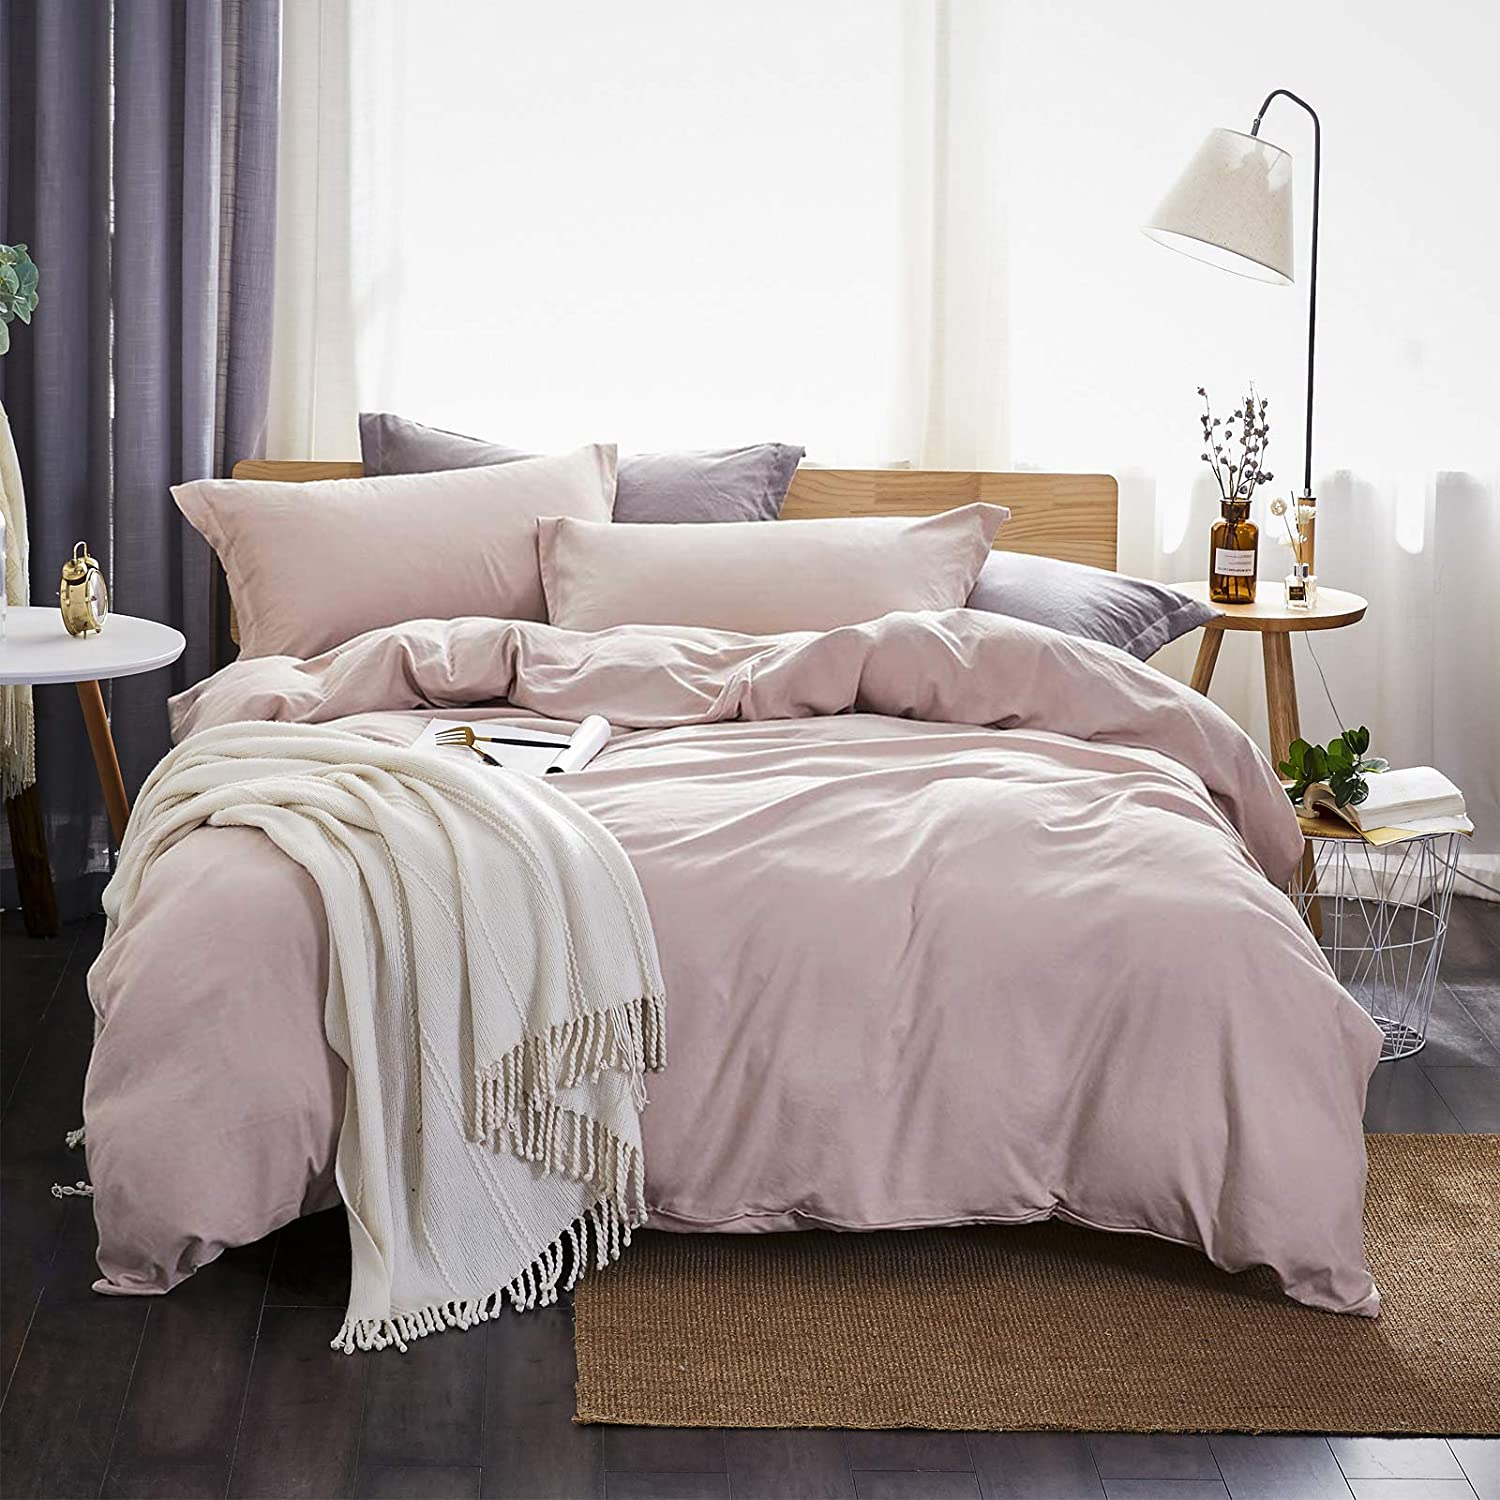 Dreaming Wapiti, 100% Washed Microfiber 3pcs Bedding Duvet Cover Set, Solid Color-Soft and Breathable with Zipper Closure & Corner Ties Pink Mocha, Queen) 3 Pieces